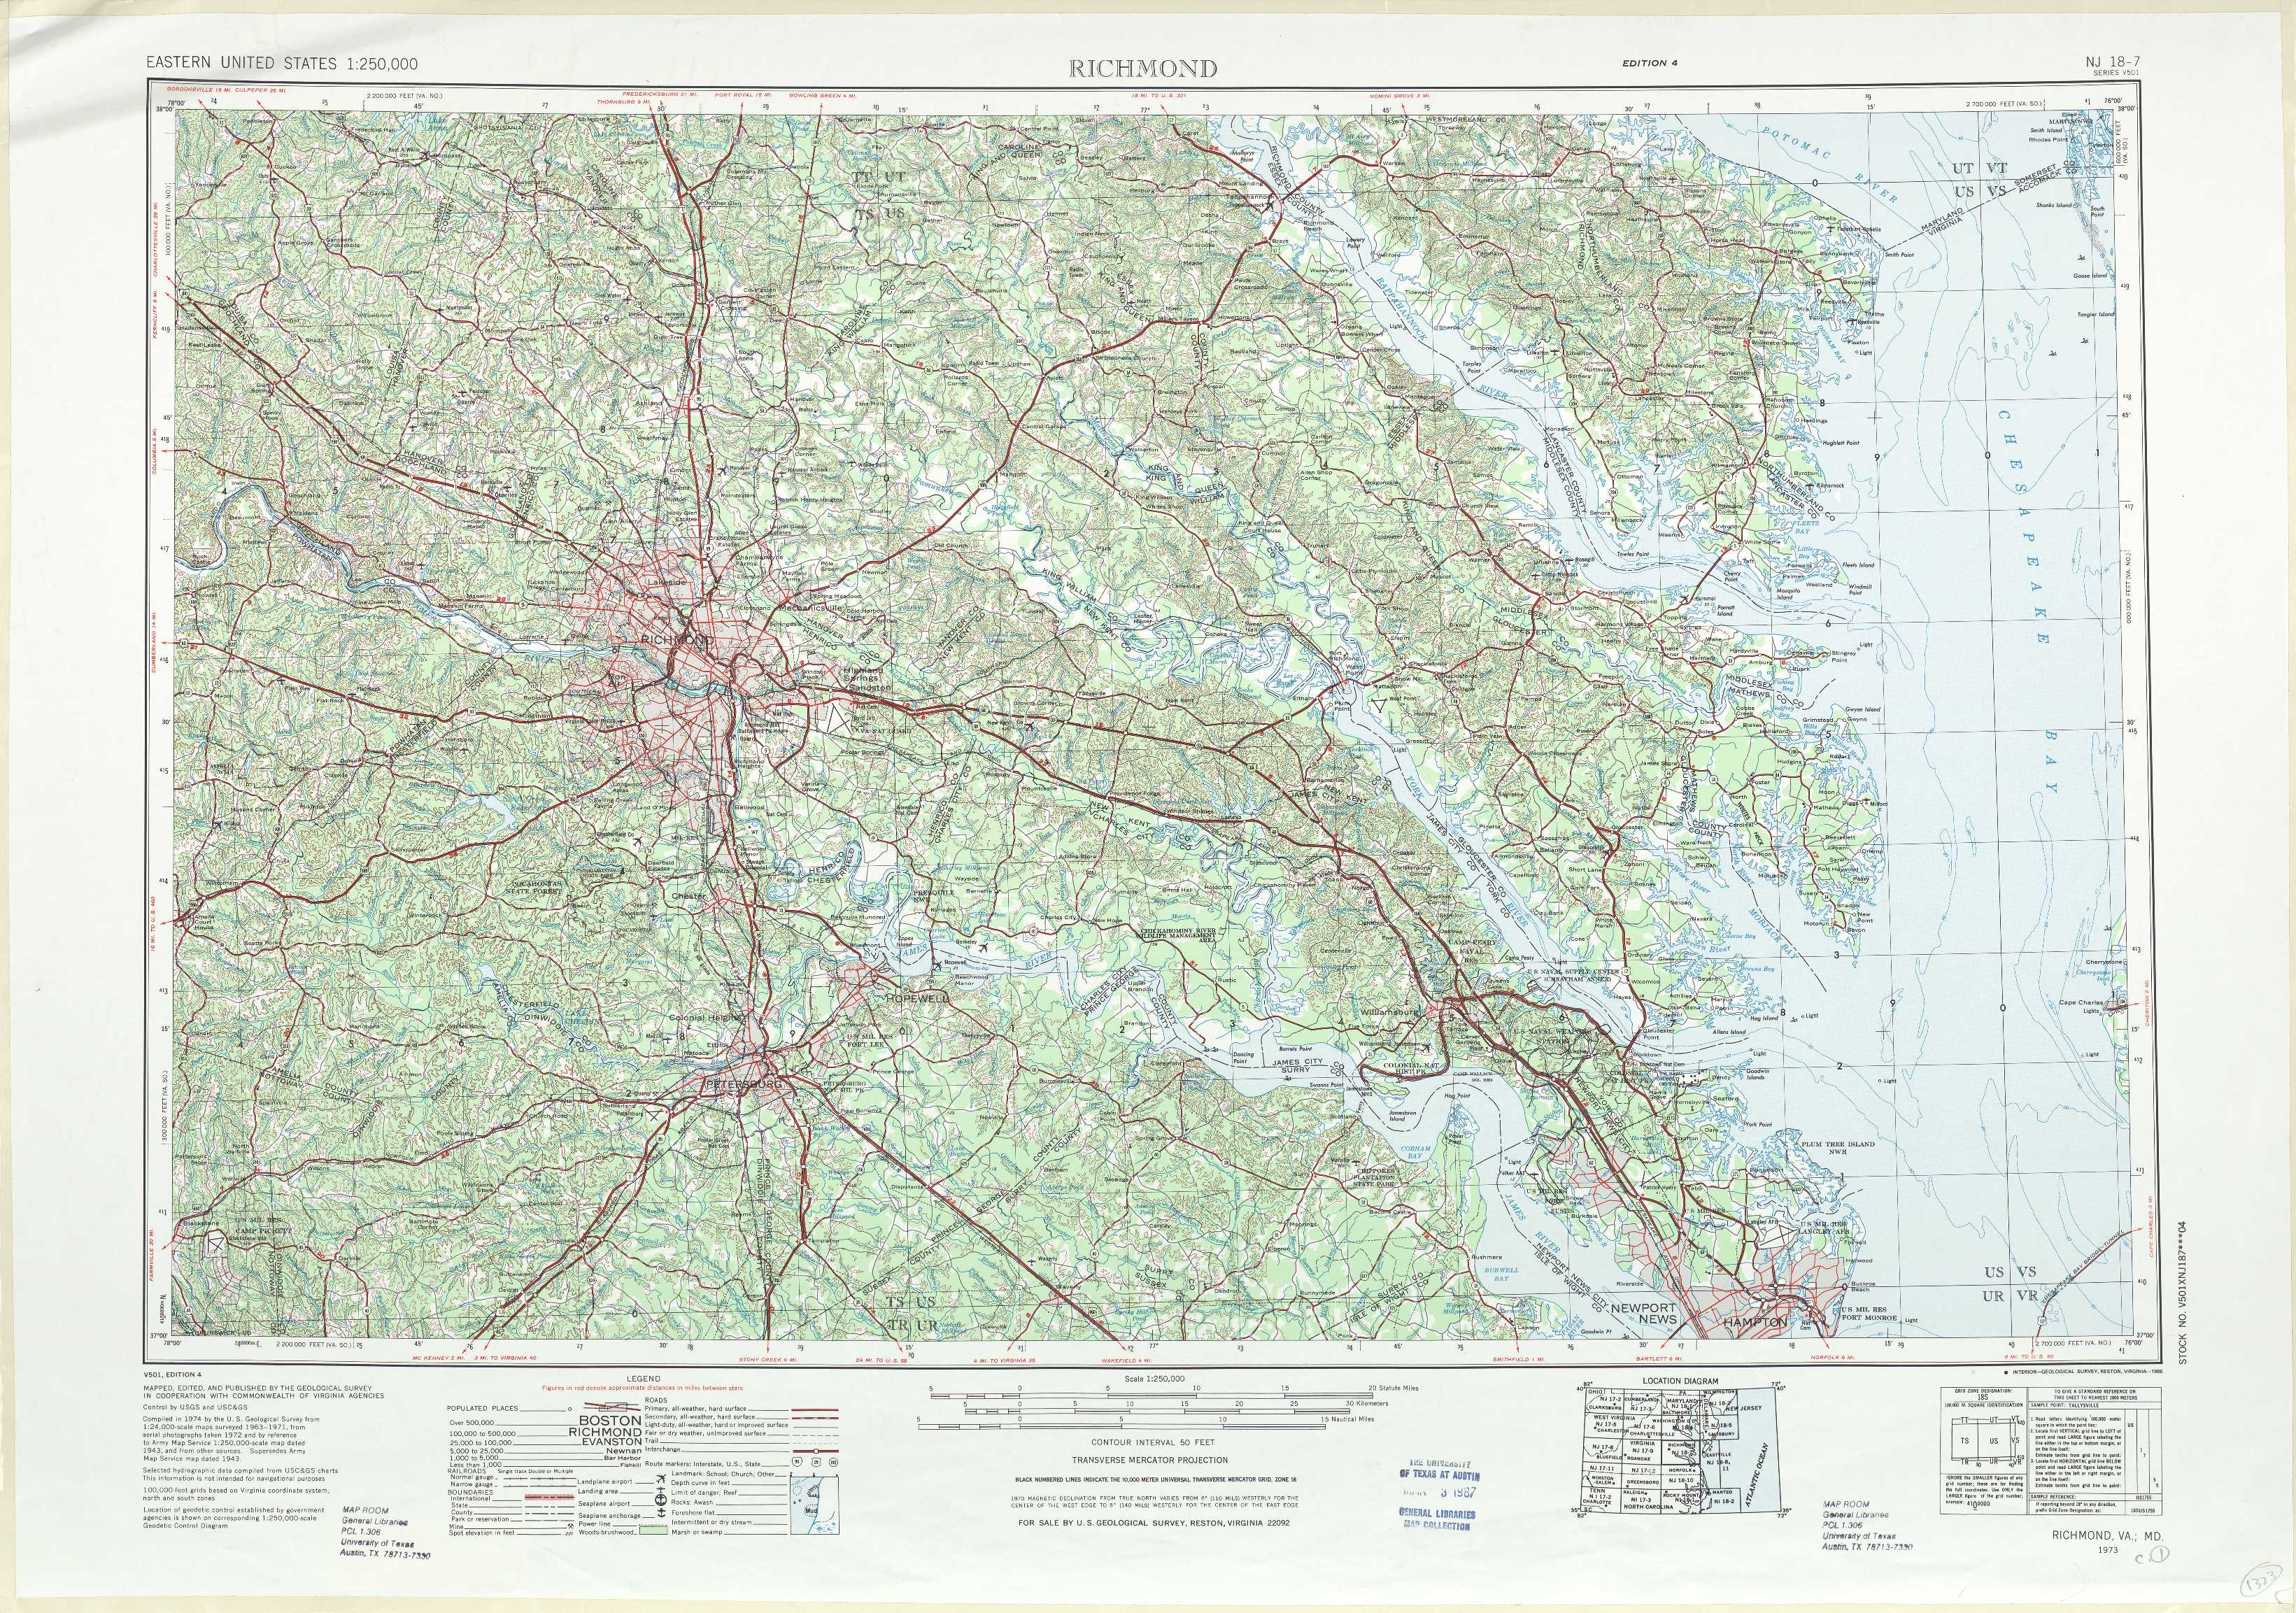 Richmond topographic maps, VA, MD - USGS Topo Quad 37076a1 ...